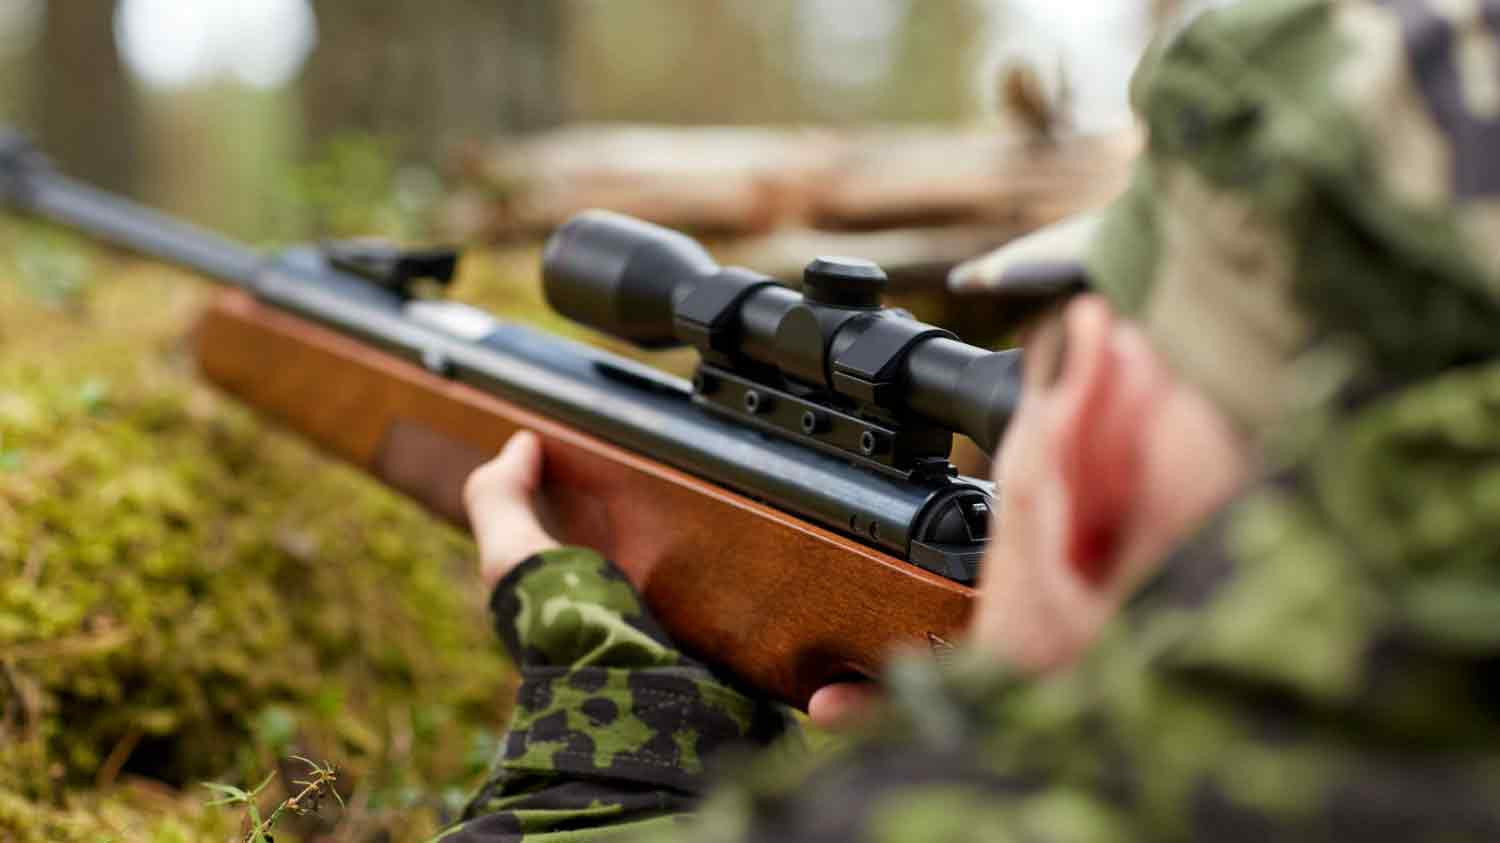 How to choose and target a rifle scope for a carbine 76